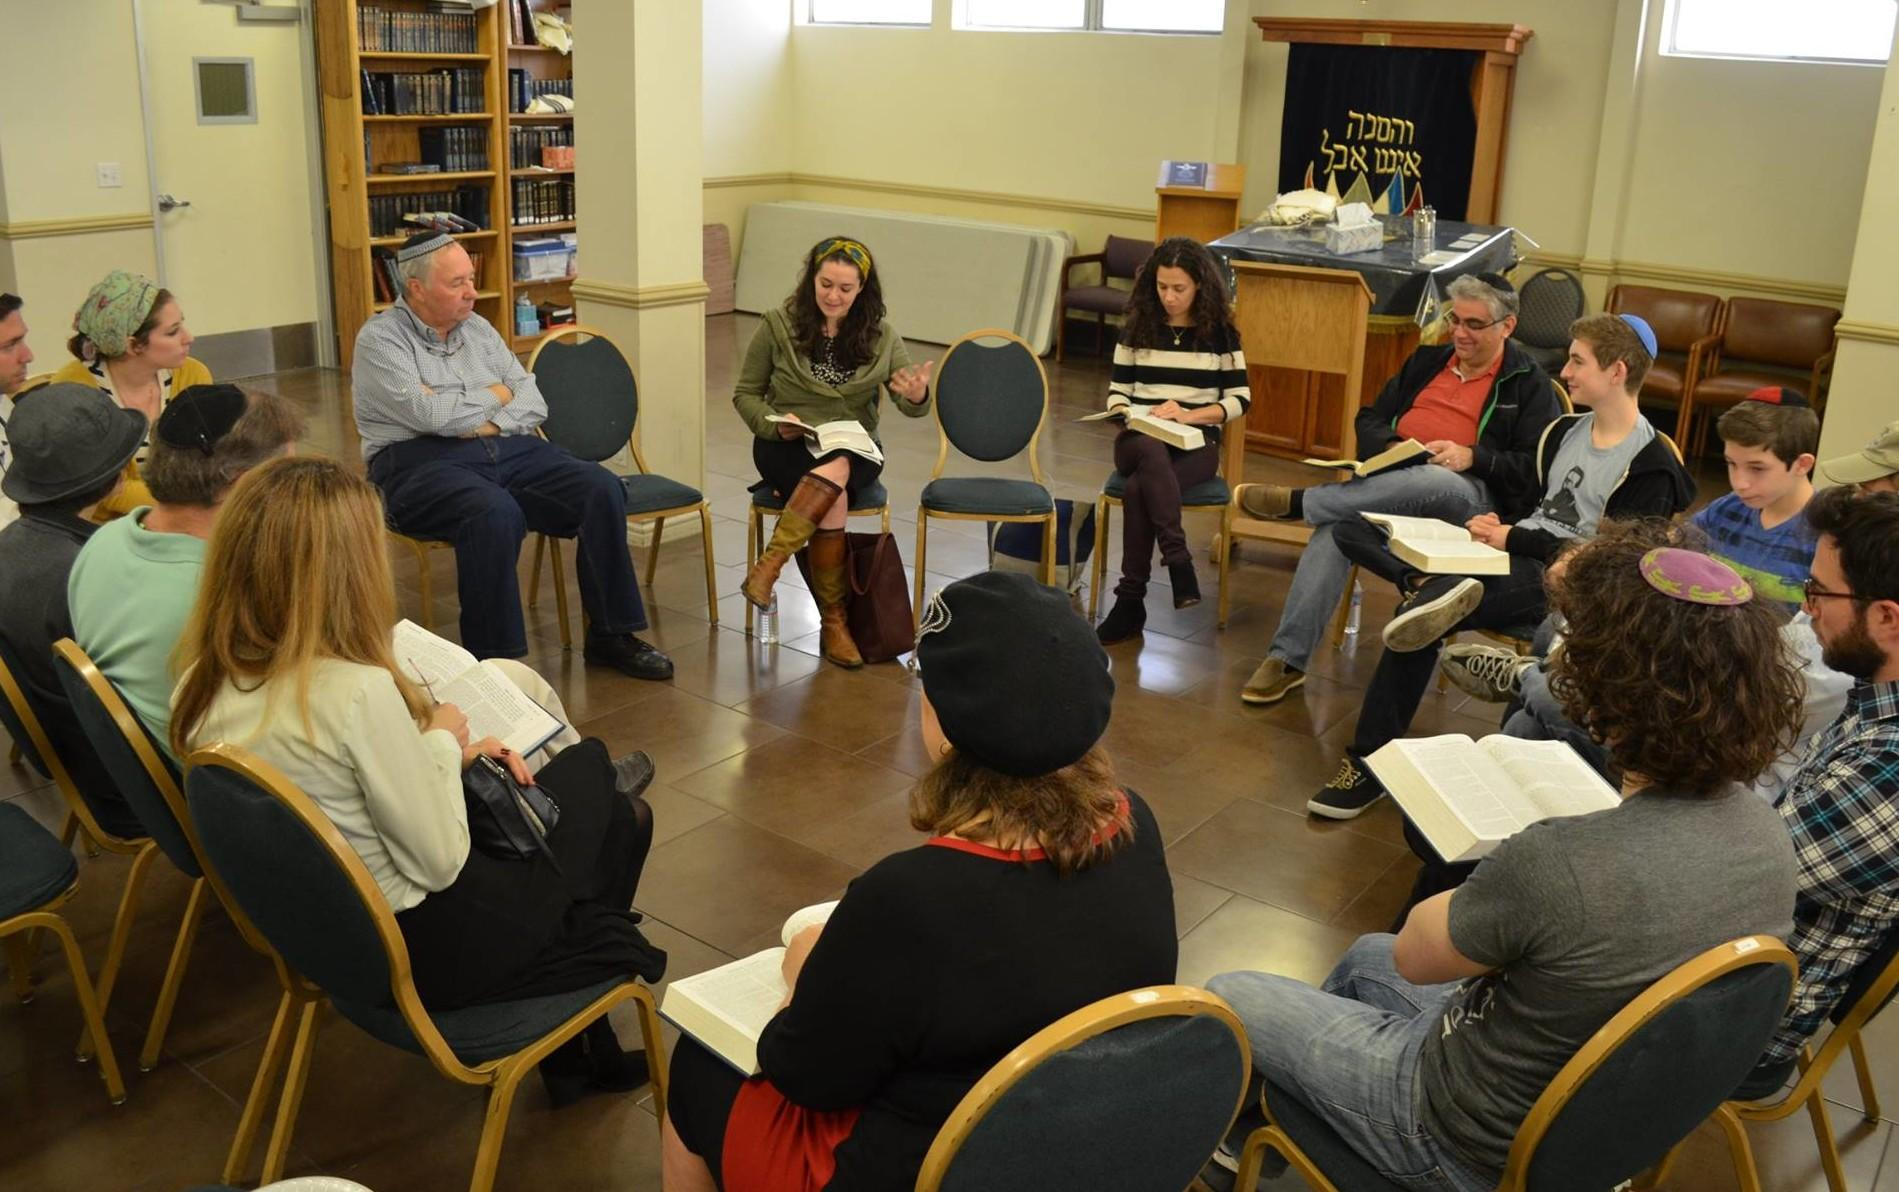 LEARNING: Judaic Studies teacher Mrs. Ruthie Skaist gave a workshop at Beth Jacob Congregation Nov. 16. Bnai David-Judeas kehilla intern Alissa Thomas-Newborn was not allowed to speak there.